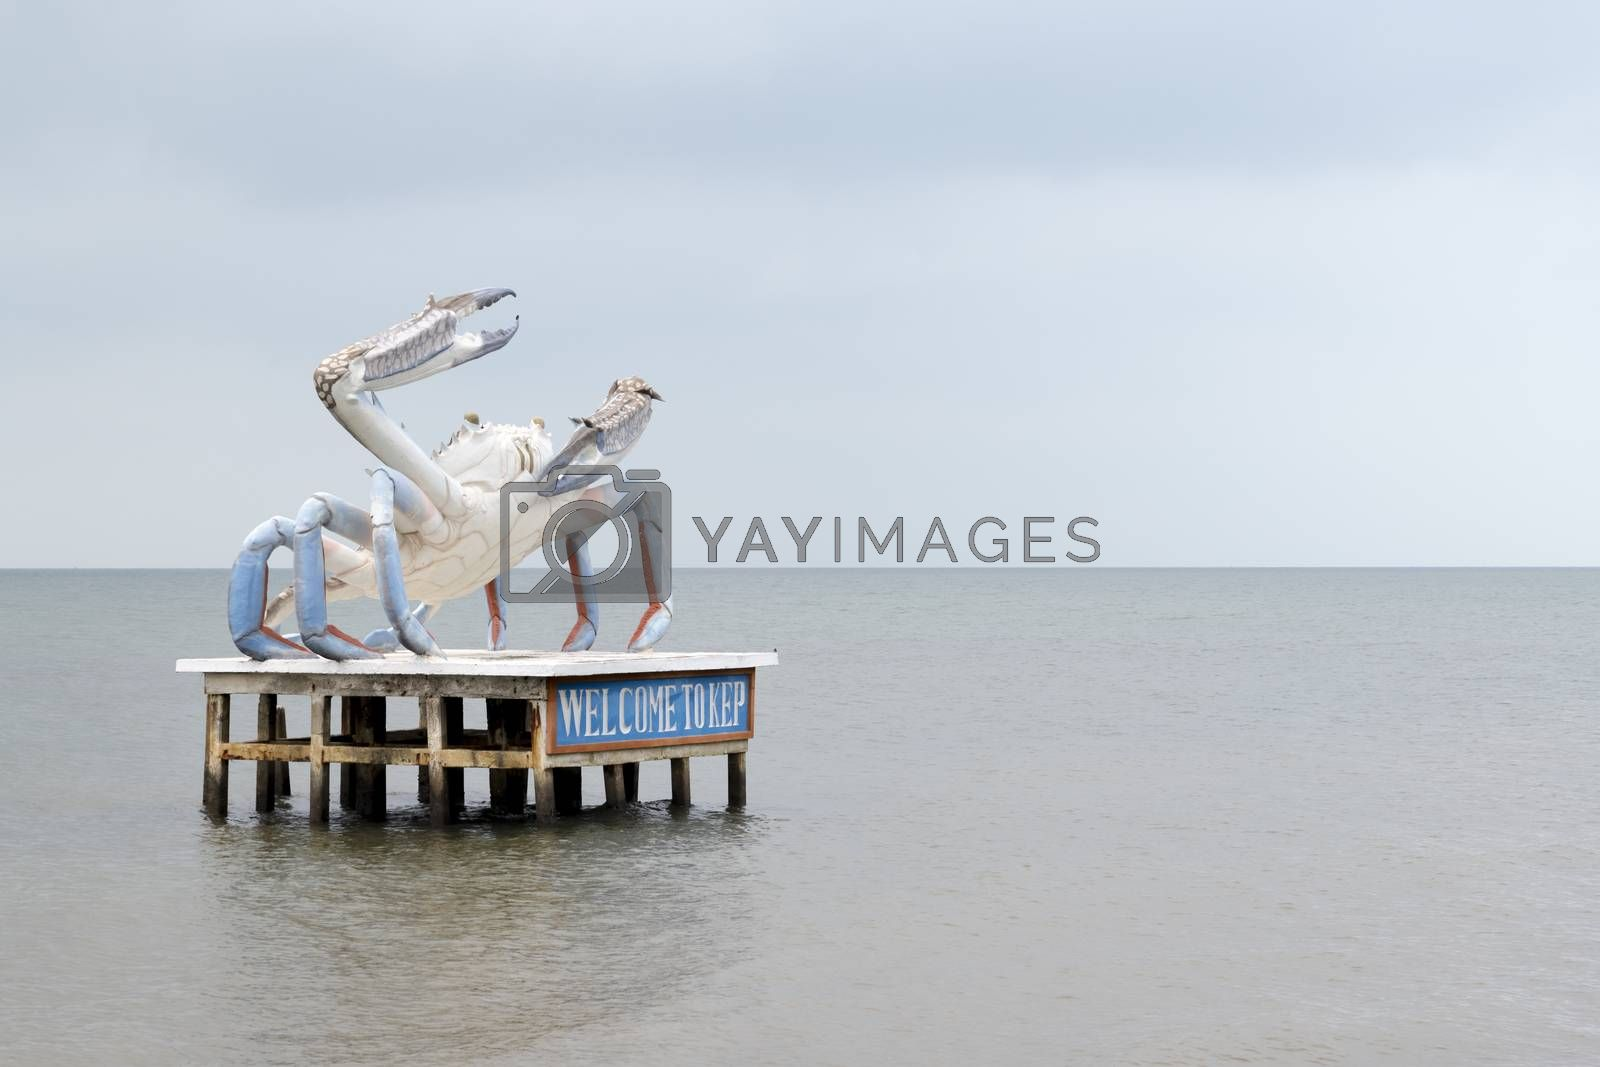 Oversized statue of a crab rising from the sea just offshore welcoming people to Kep and showing what is famous there. Kep, Cambodia